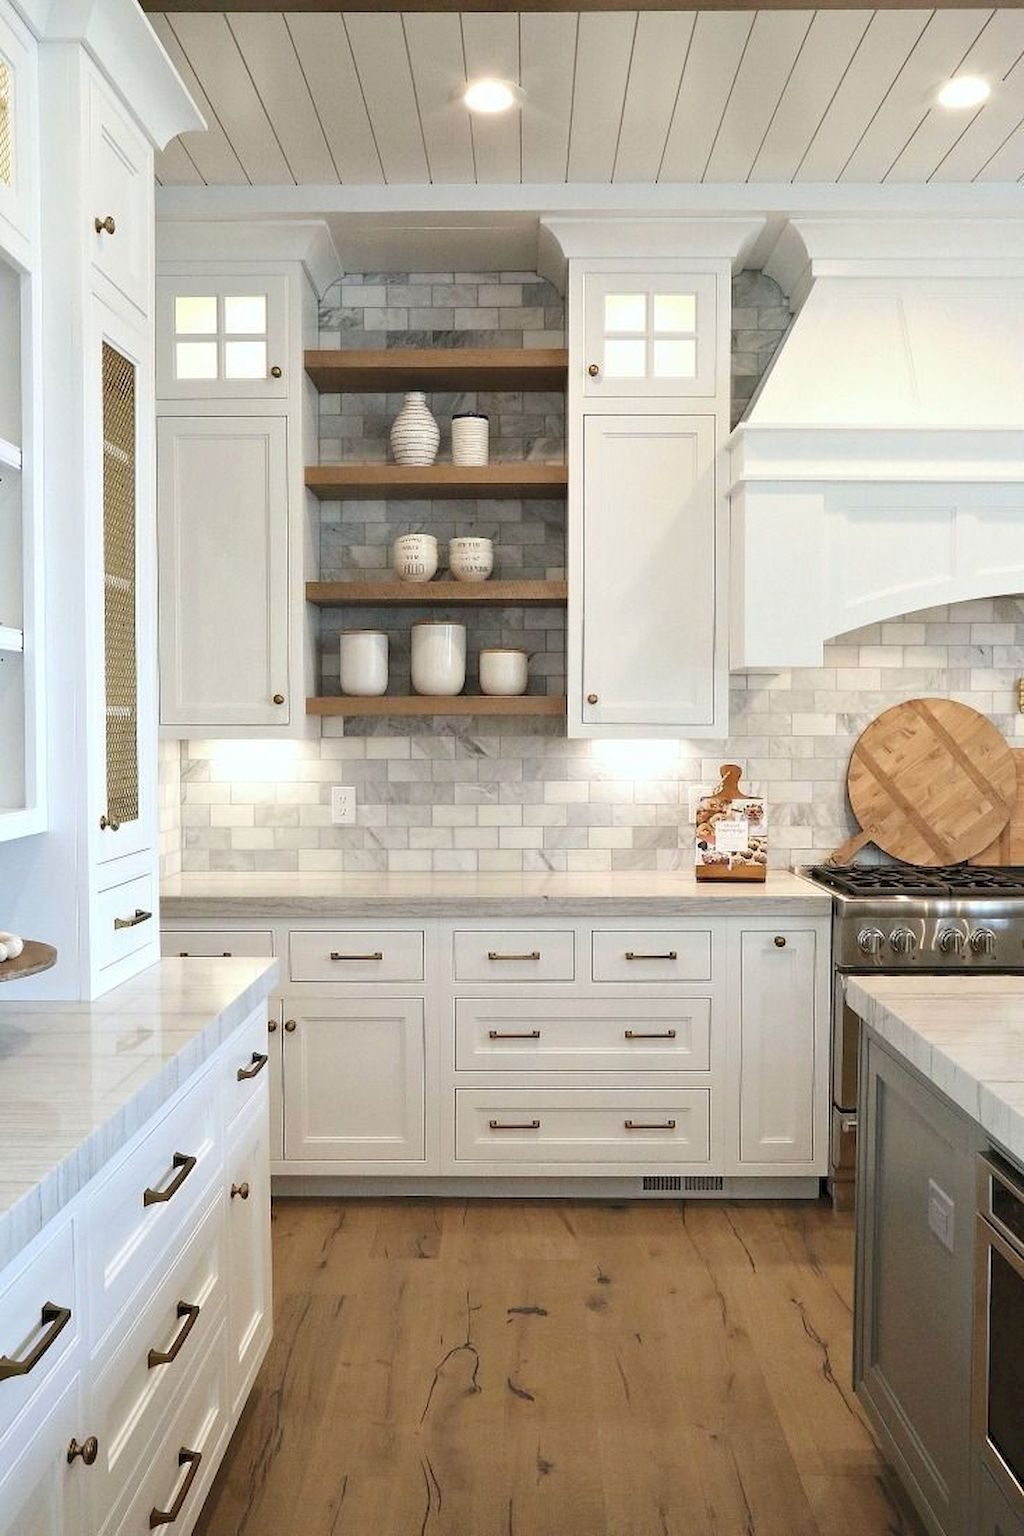 Top 21 Awesome Ideas To Clutter Free Kitchen Countertops New Home